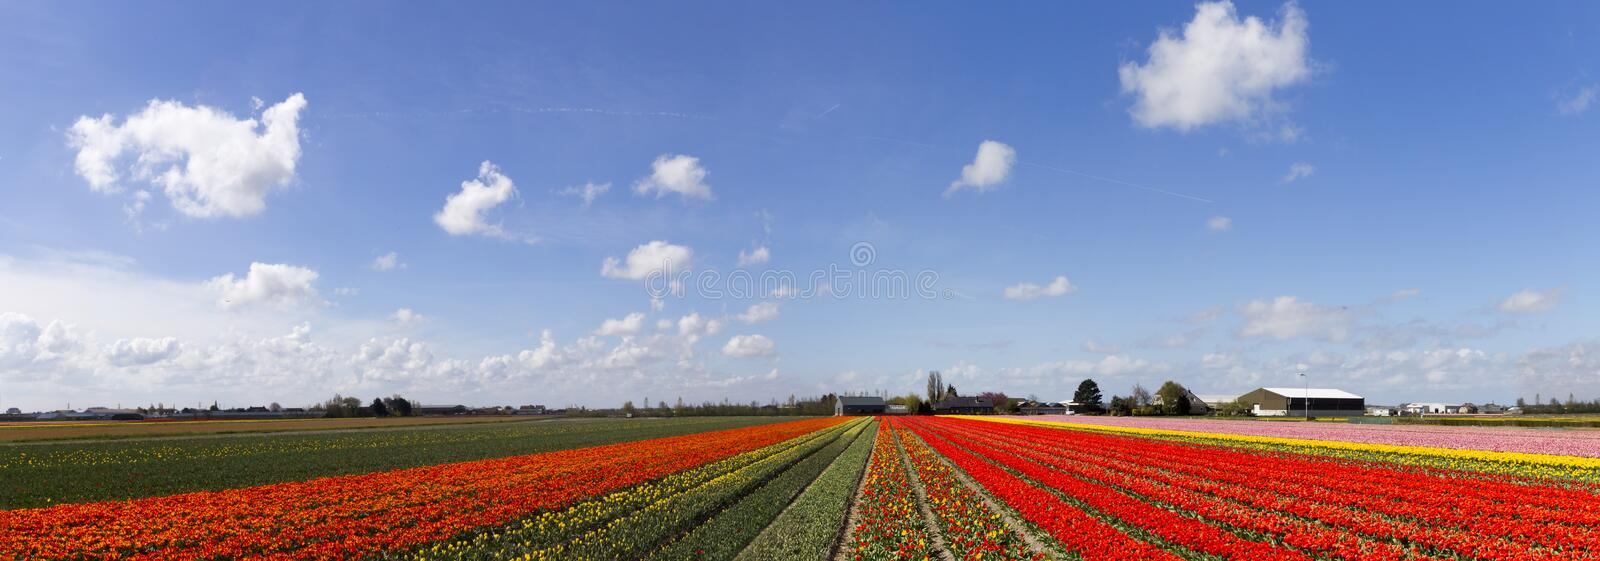 Tulips farm large panorama royalty free stock images